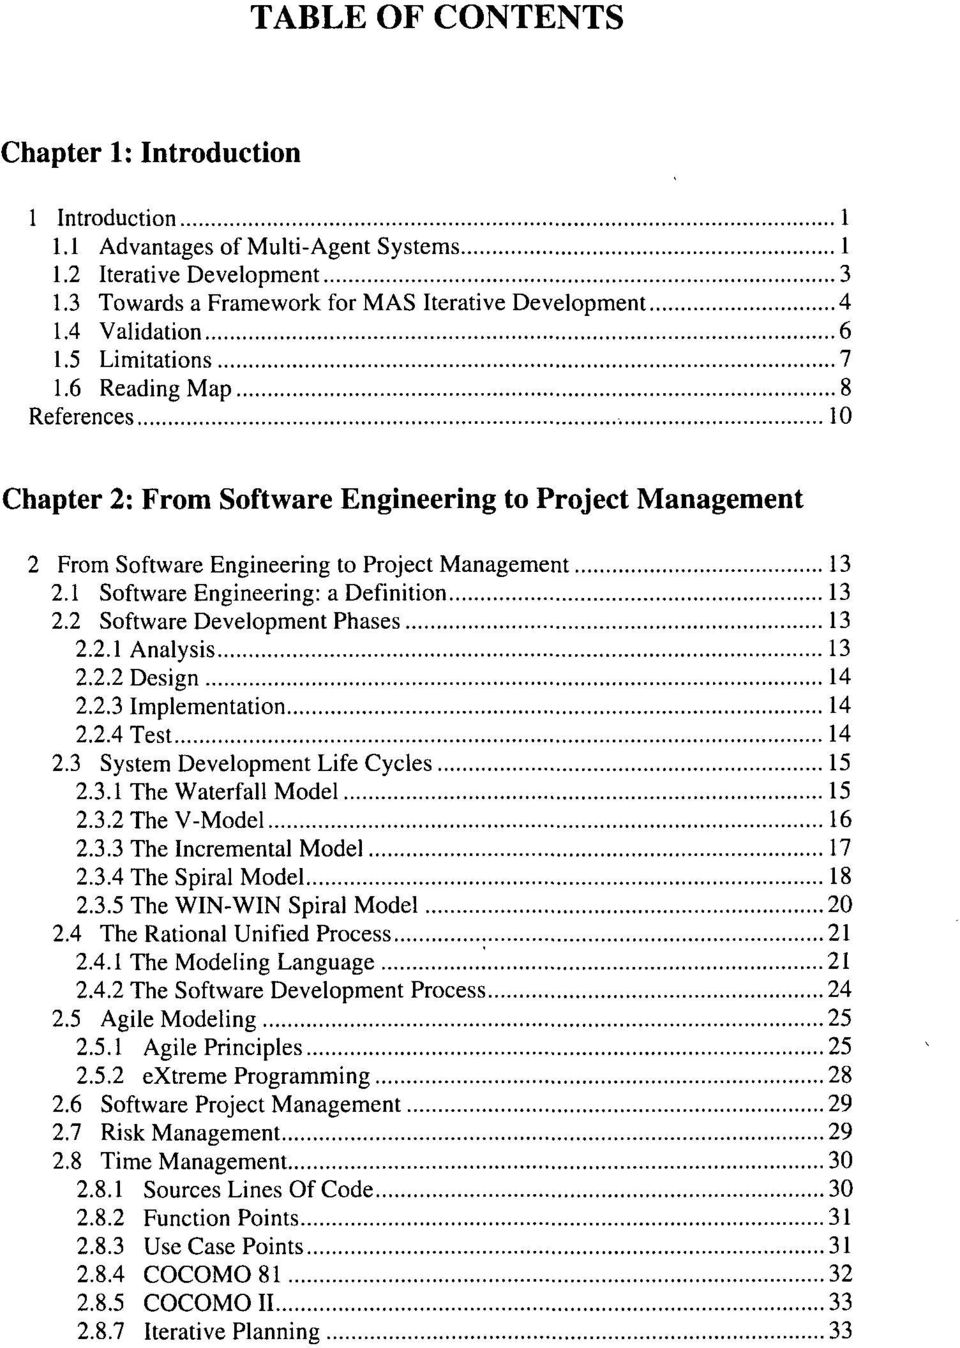 1 Software Engineering: a Definition 13 2.2 Software Development Phases 13 2.2.1 Analysis 13 2.2.2 Design 14 2.2.3 Implementation 14 2.2.4 Test 14 2.3 System Development Life Cycles 15 2.3.1 The Waterfall Model 15 2.